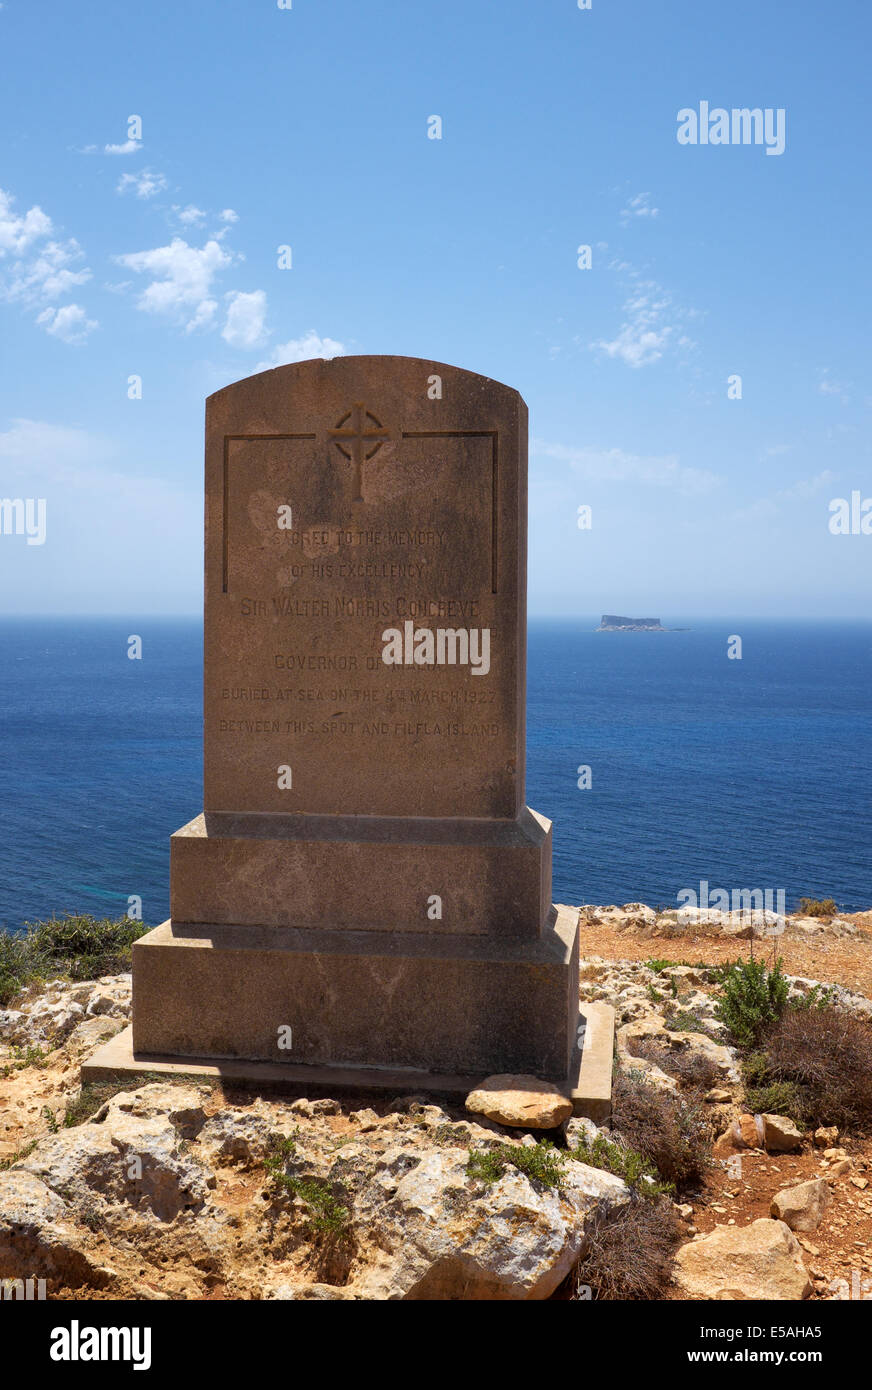 Monument to General Sir Walter Norris Congcreve Governor of Malta near Mnajdra noting his burial at sea near Filfla - Stock Image